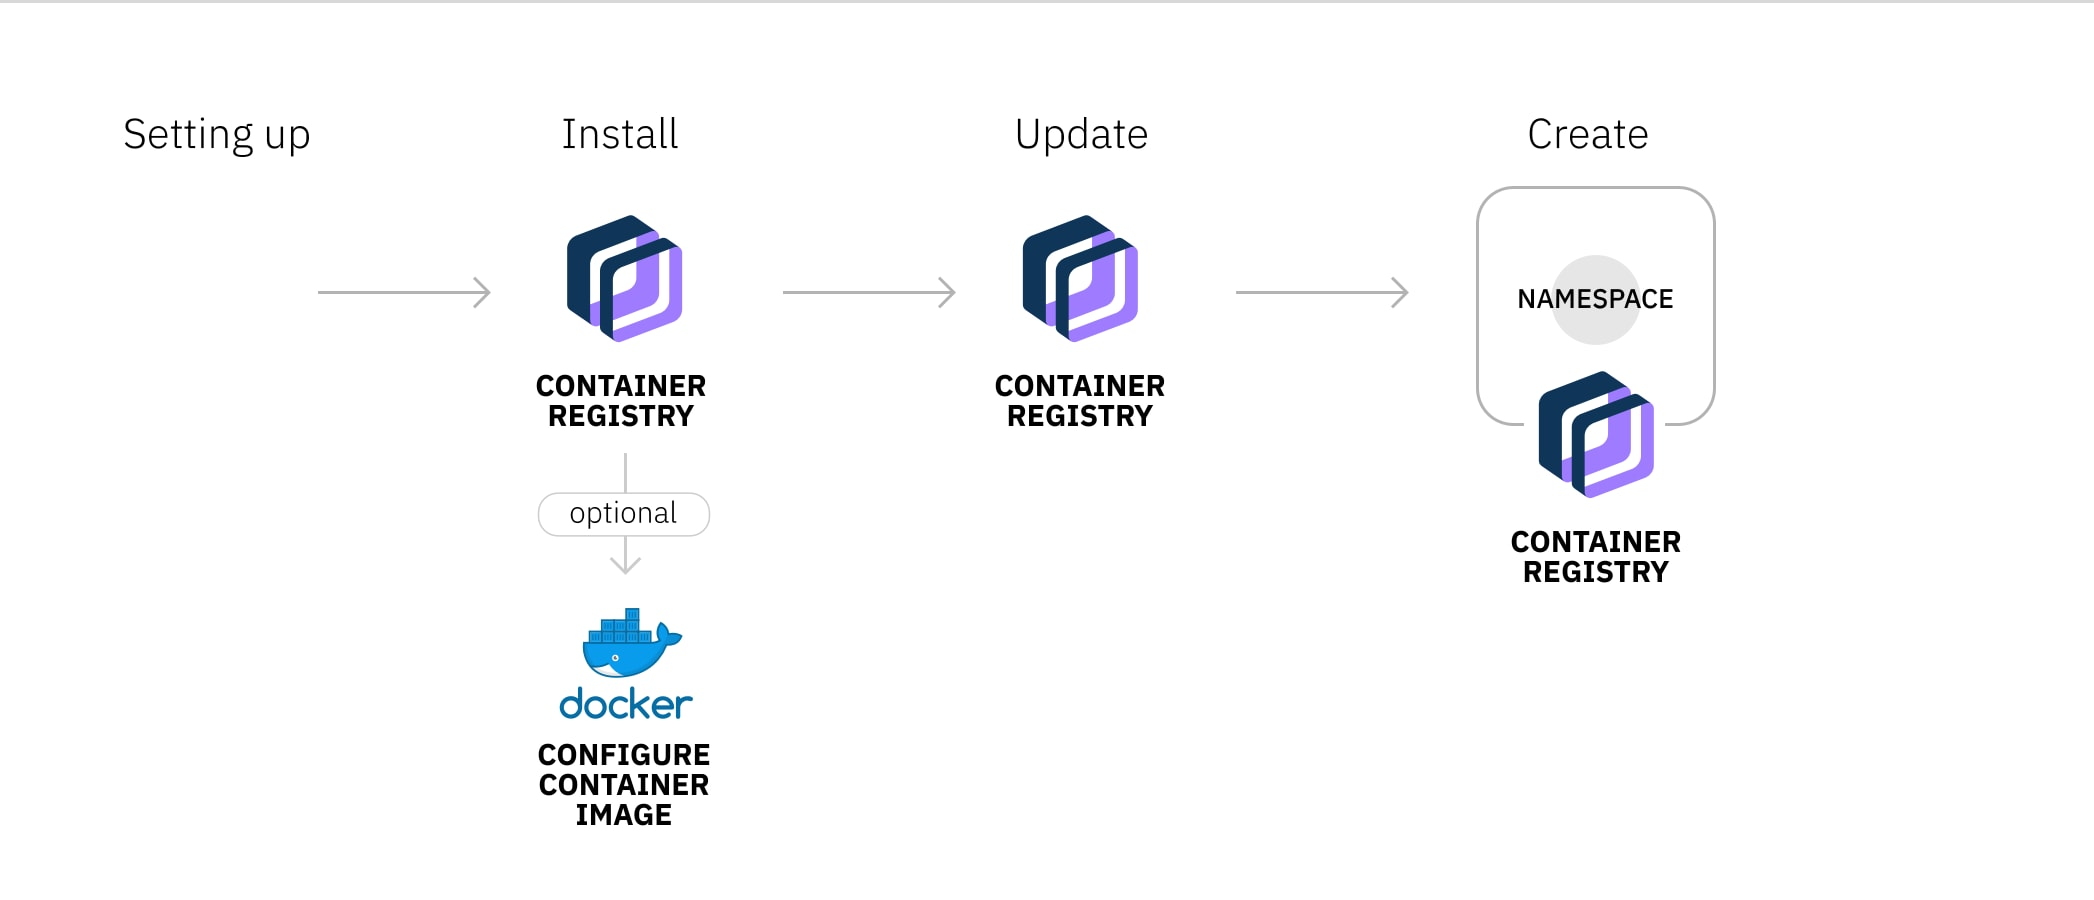 Diagram showing the process of setting up IBM Cloud Container Registry